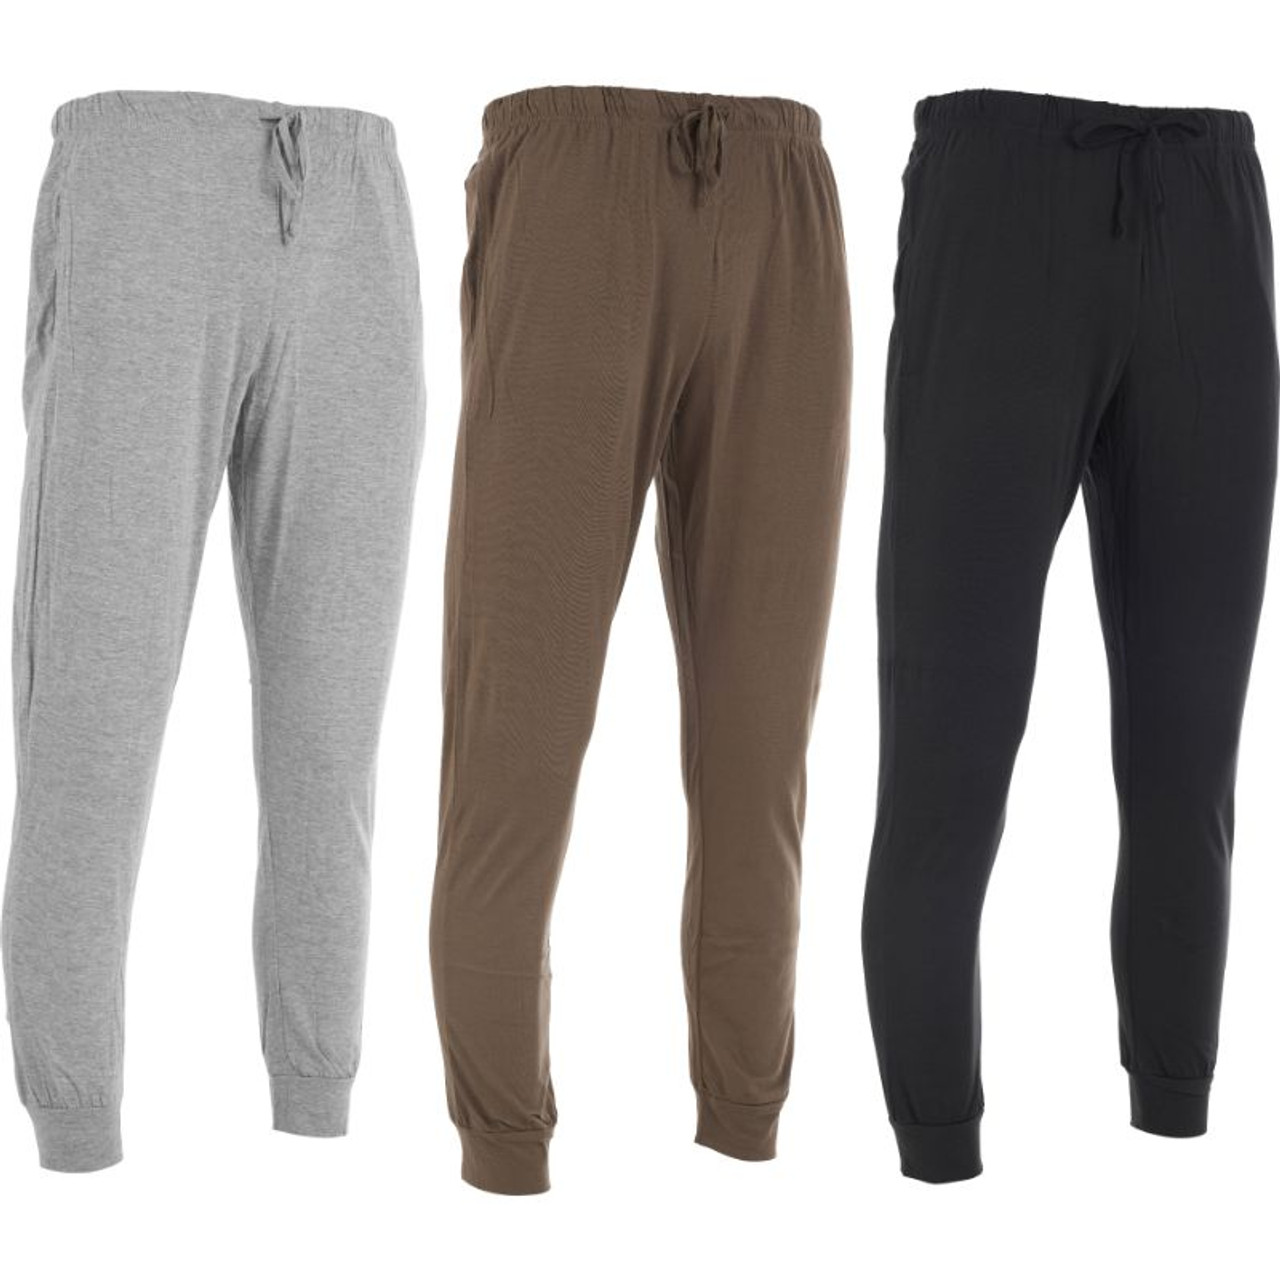 Men's Casual Knit Pajama Bottom Loungewear Pants with Pockets - 3 Pack